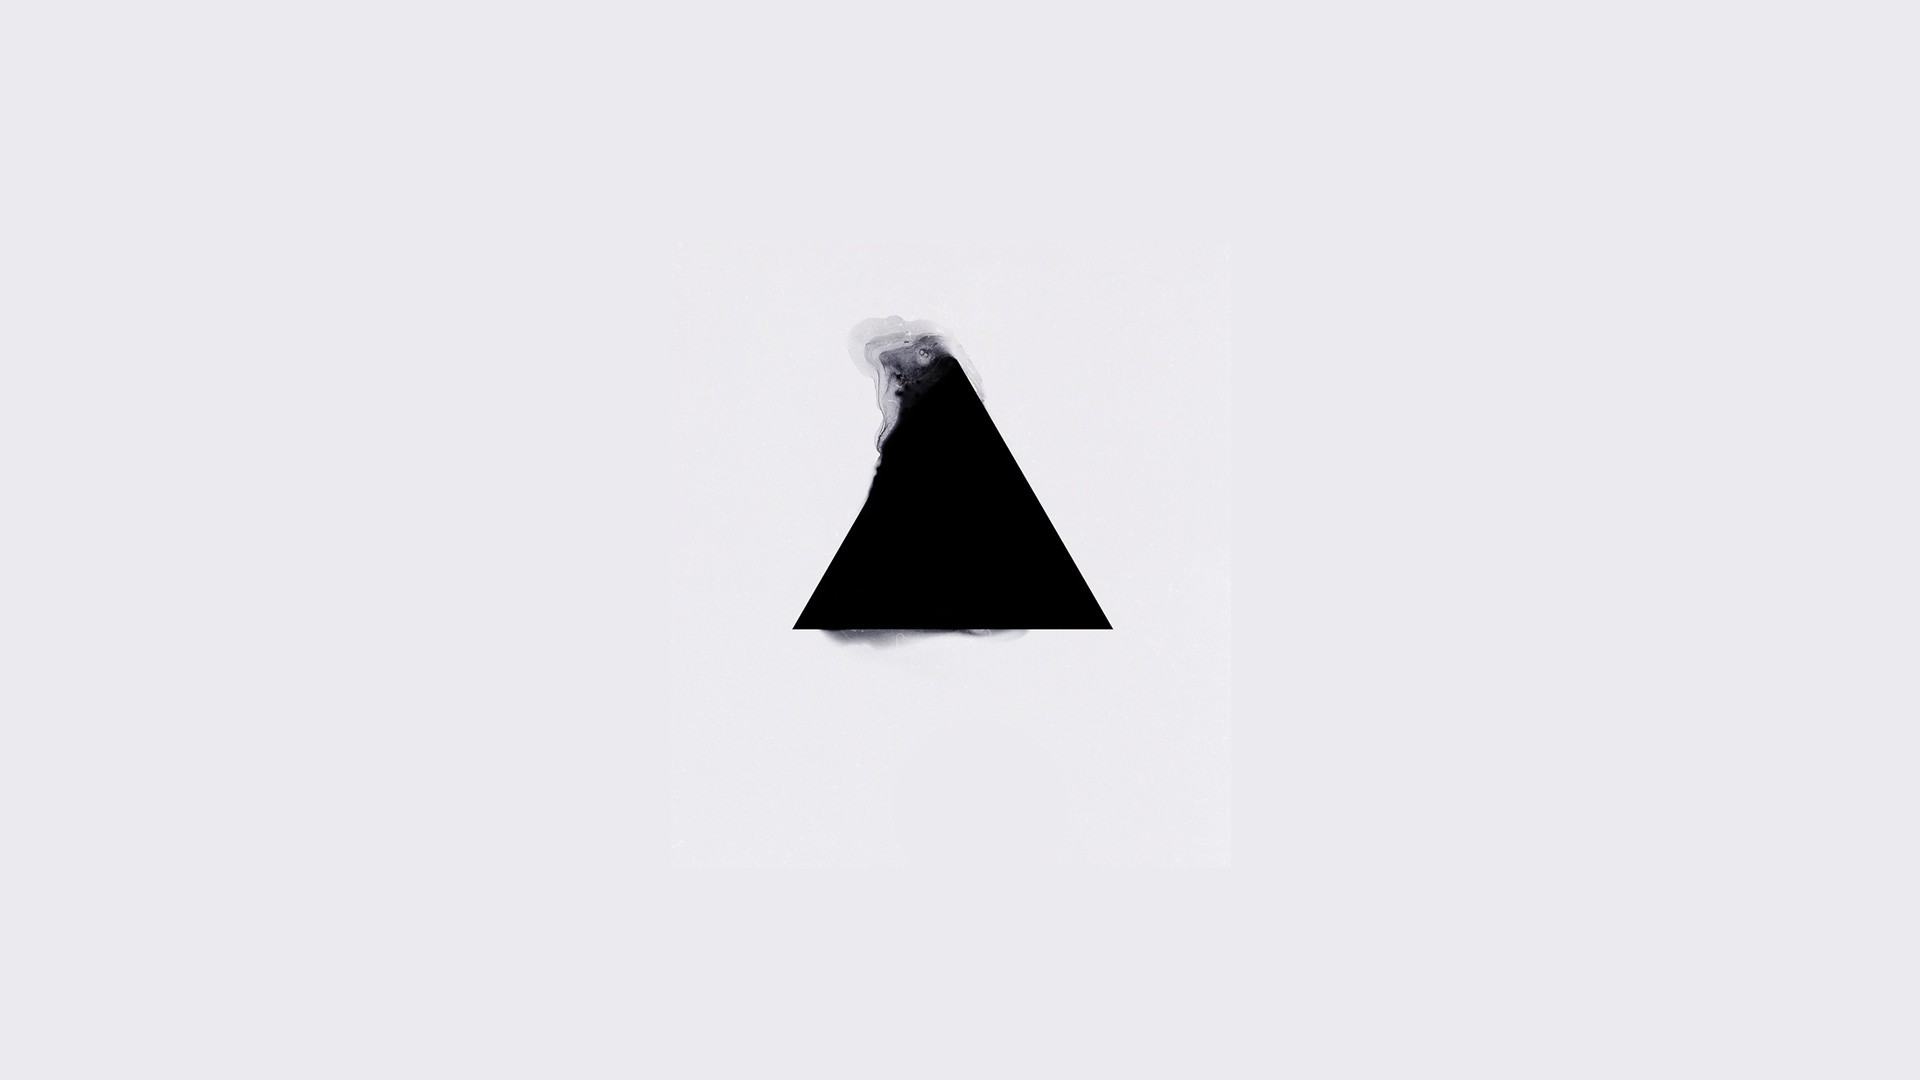 General 1920x1080 minimalism triangle geometry white background abstract simple background digital art white monochrome digital